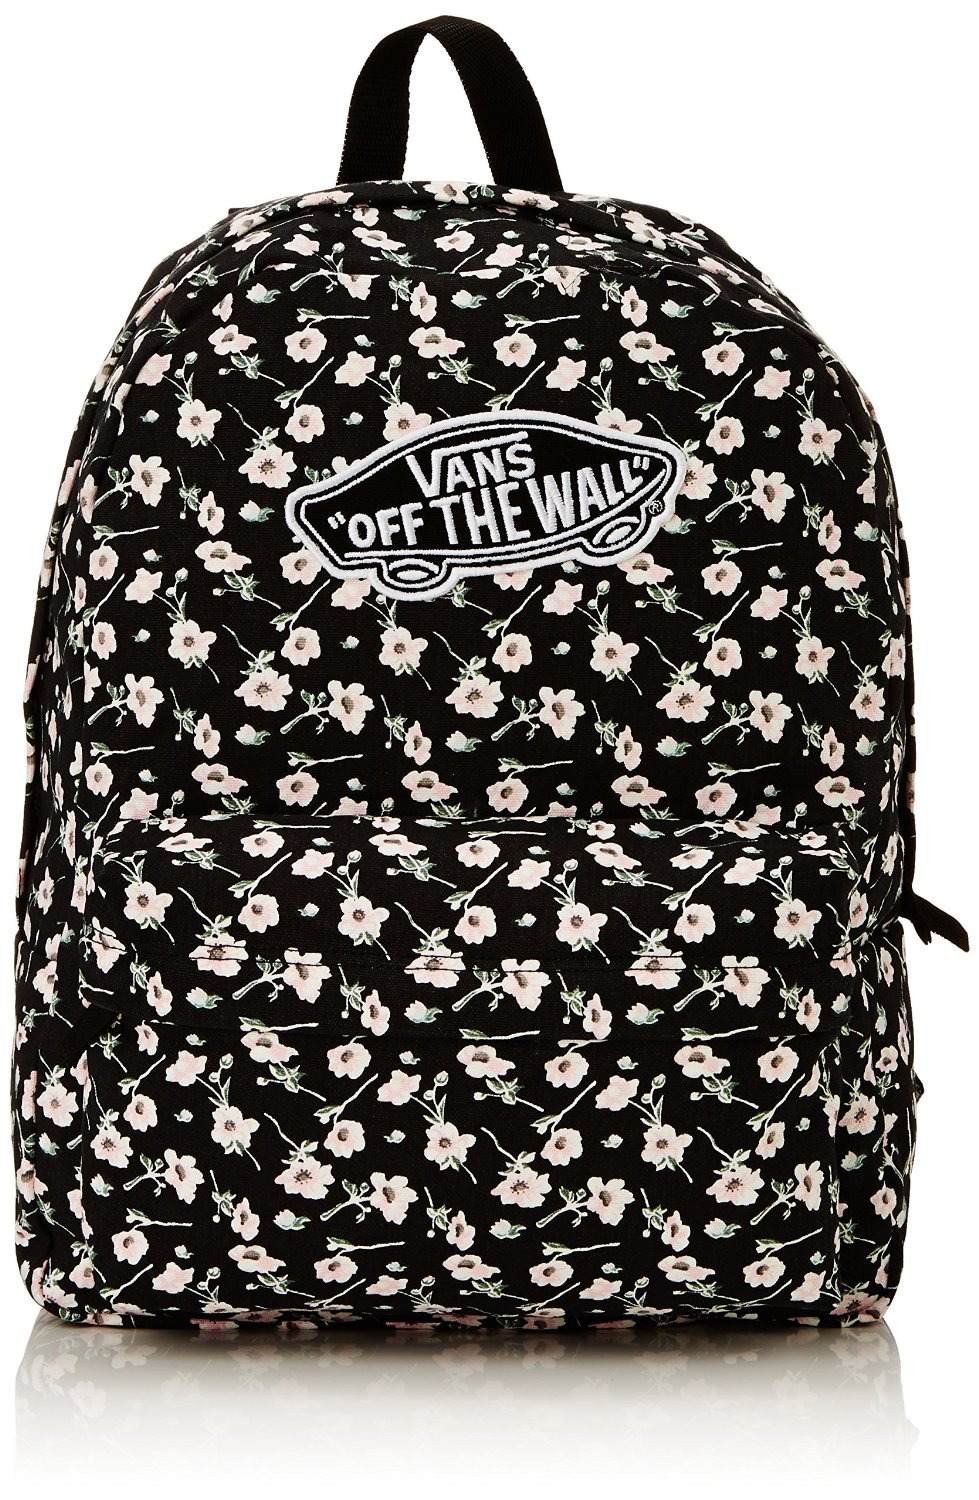 vans damen rucksack g realm backpack onyx 42 5 x 32 x 12. Black Bedroom Furniture Sets. Home Design Ideas